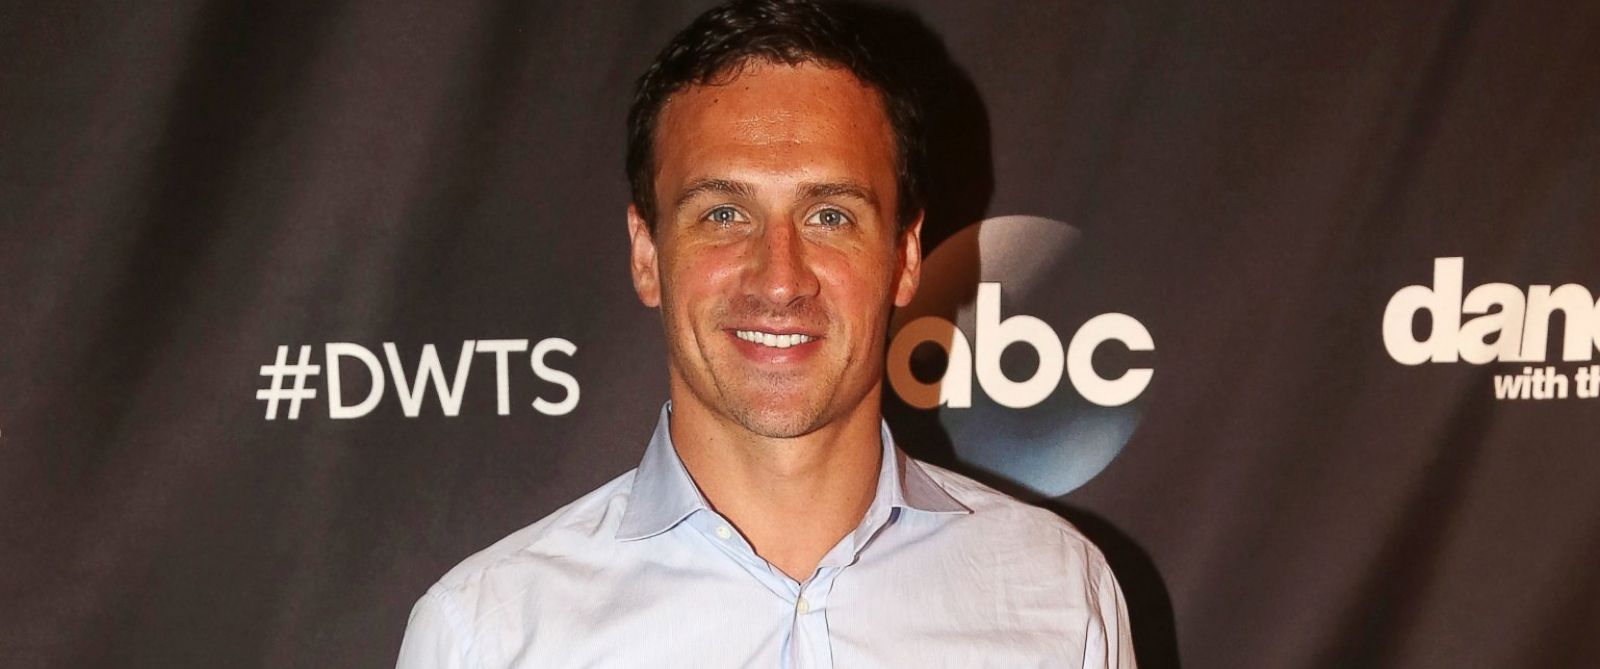 Other ways ryan lochte could have greeted anna wintour